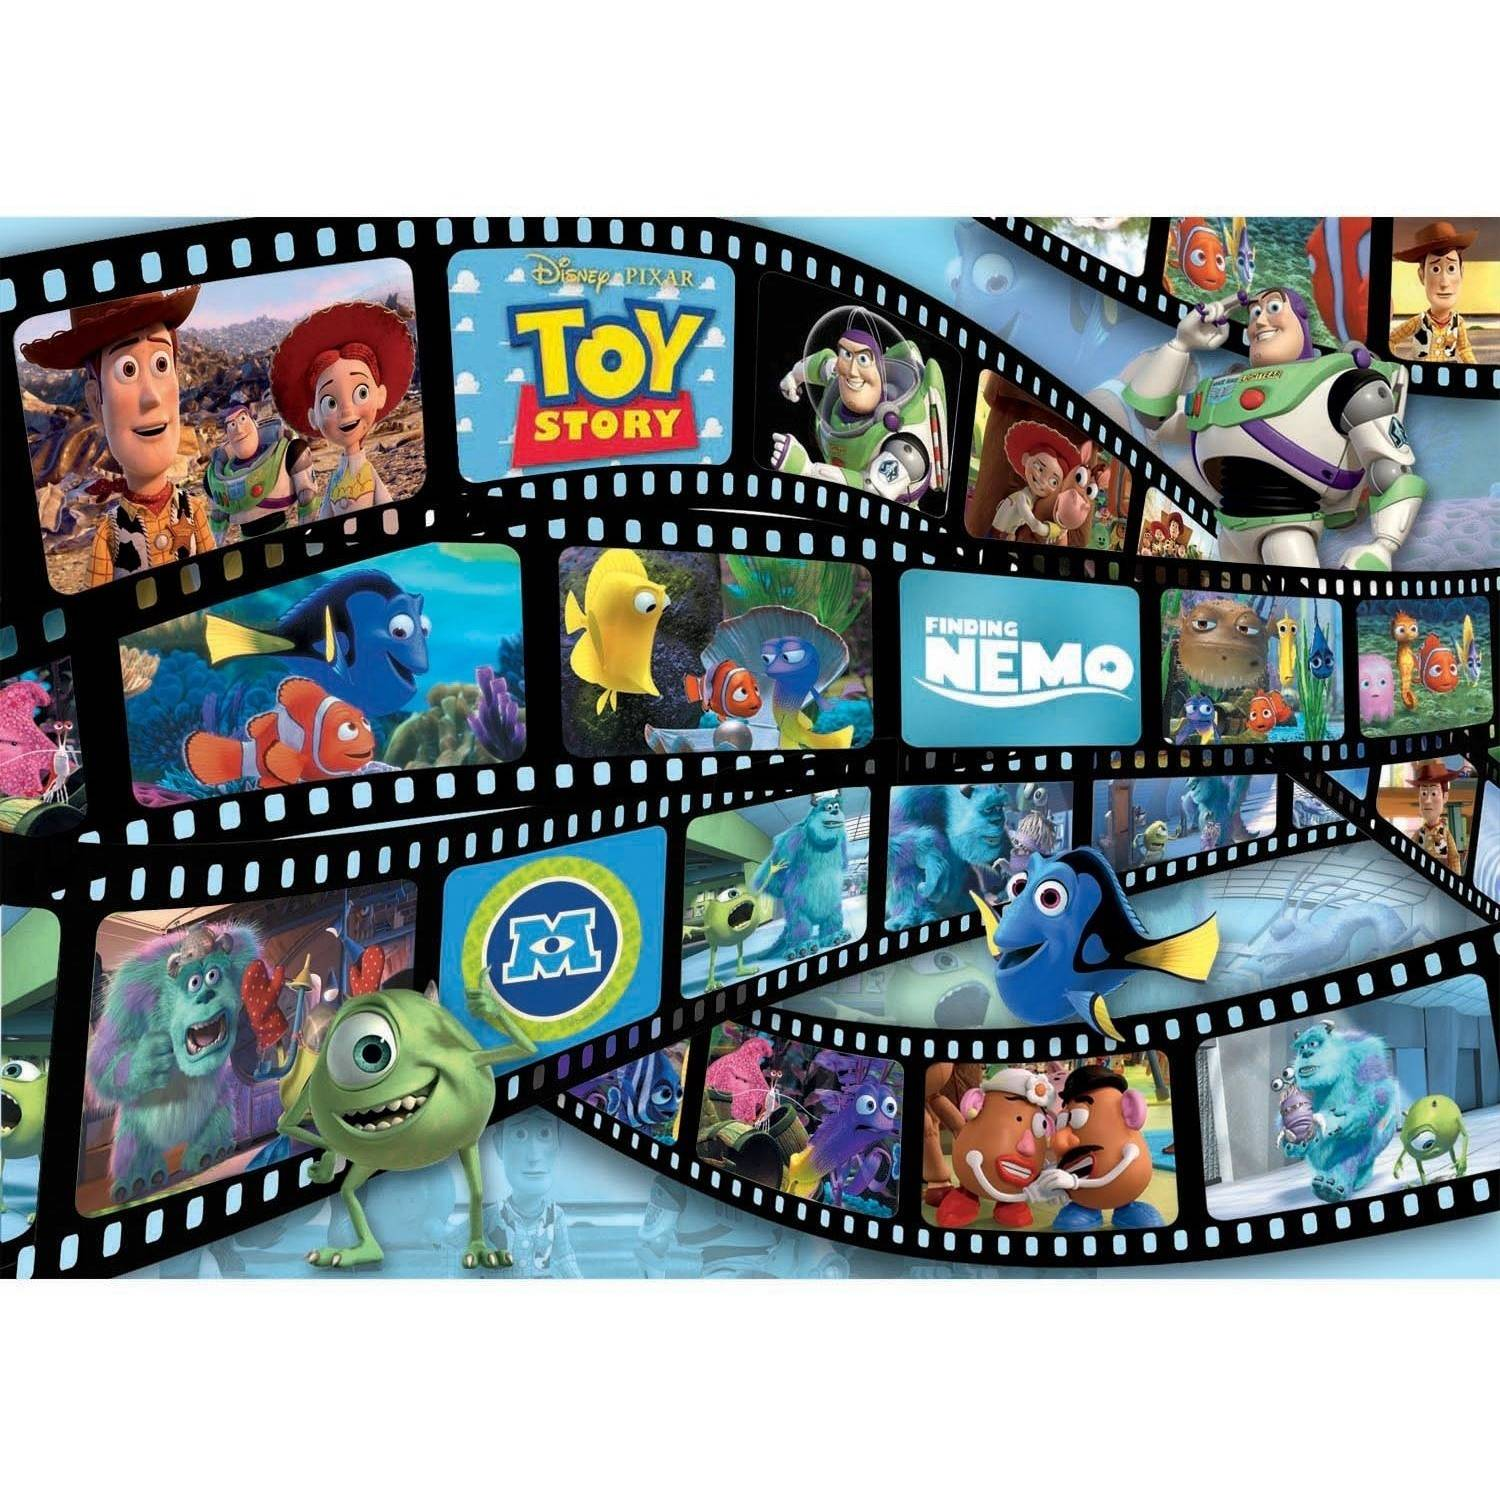 Disney Movie Reel 1,000-Piece Puzzle by Ravensburger USA Inc